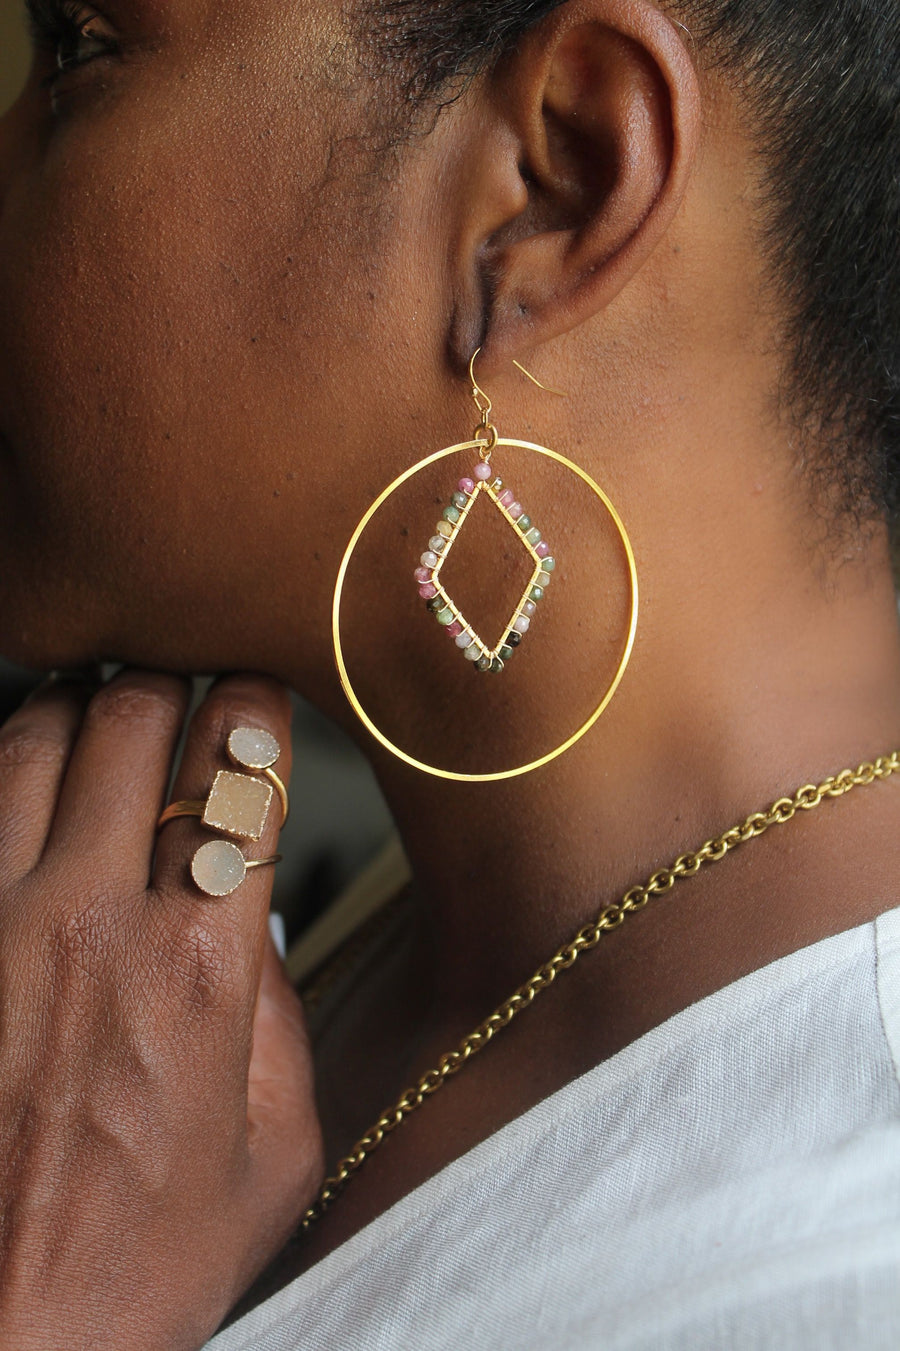 The Liana Earrings